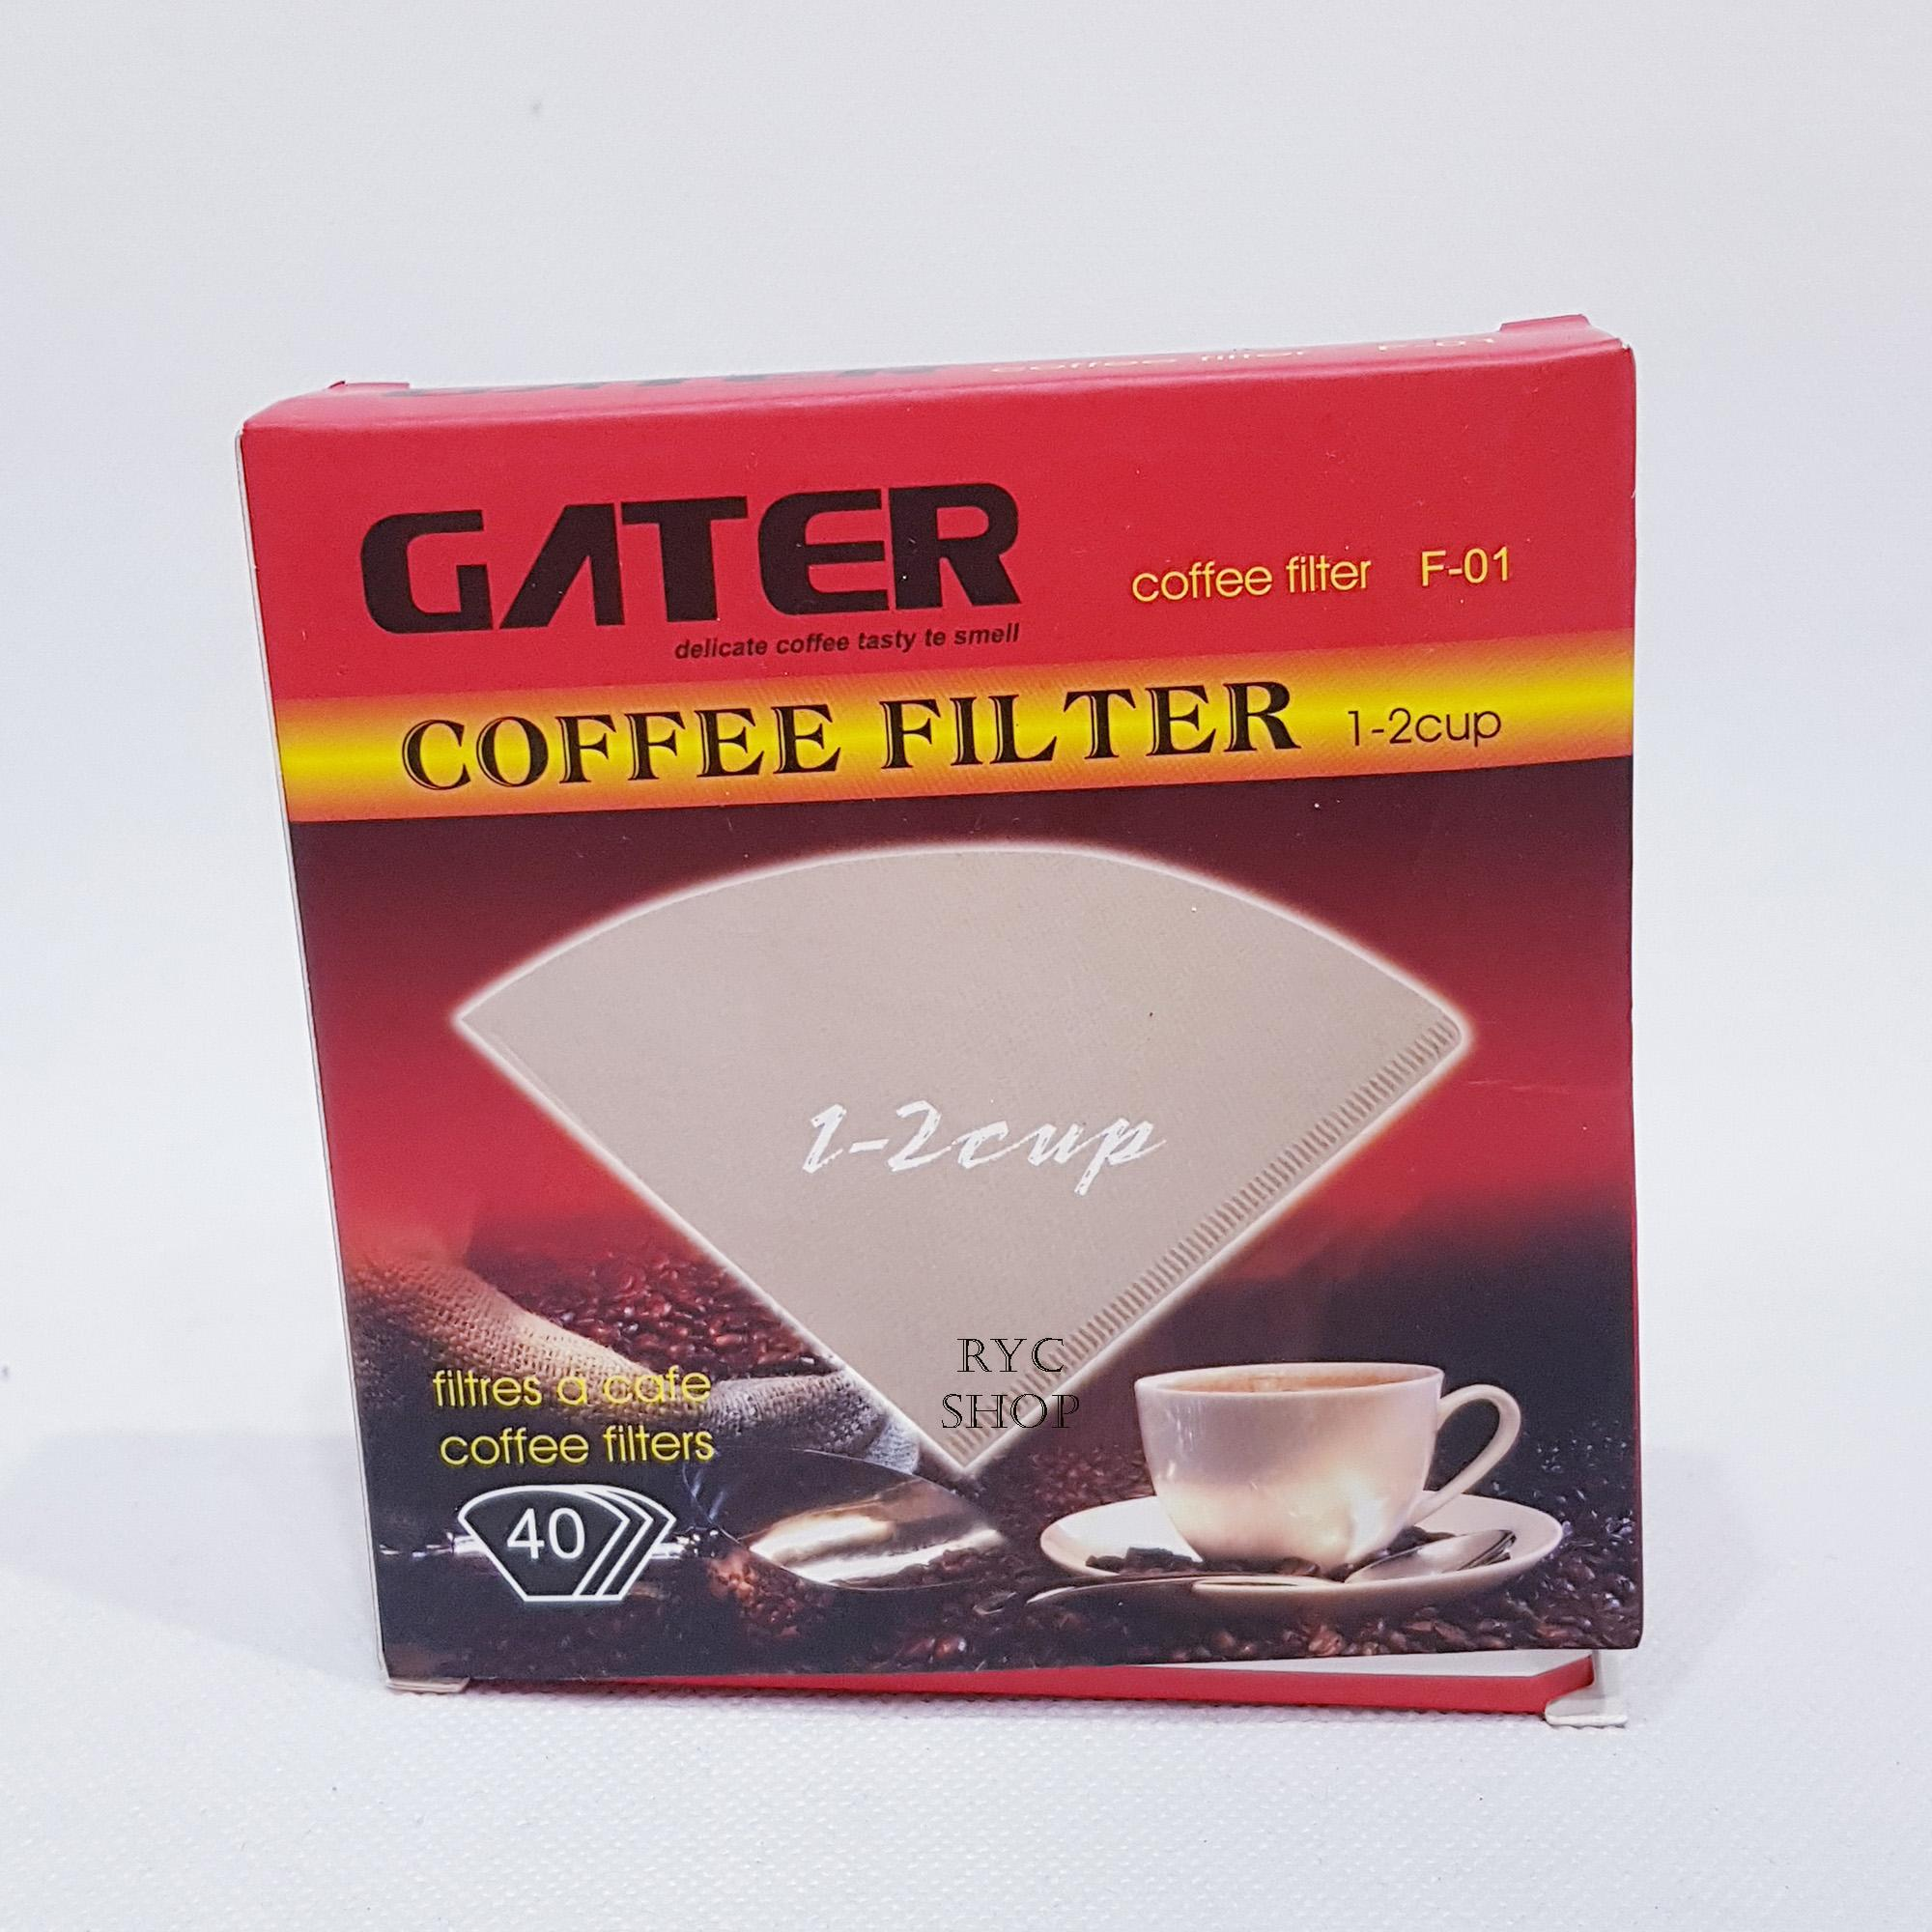 Kertas Filter Saringan Kopi / Coffee Filter Brew / Coffee Filter Kerucut Gater 1-2